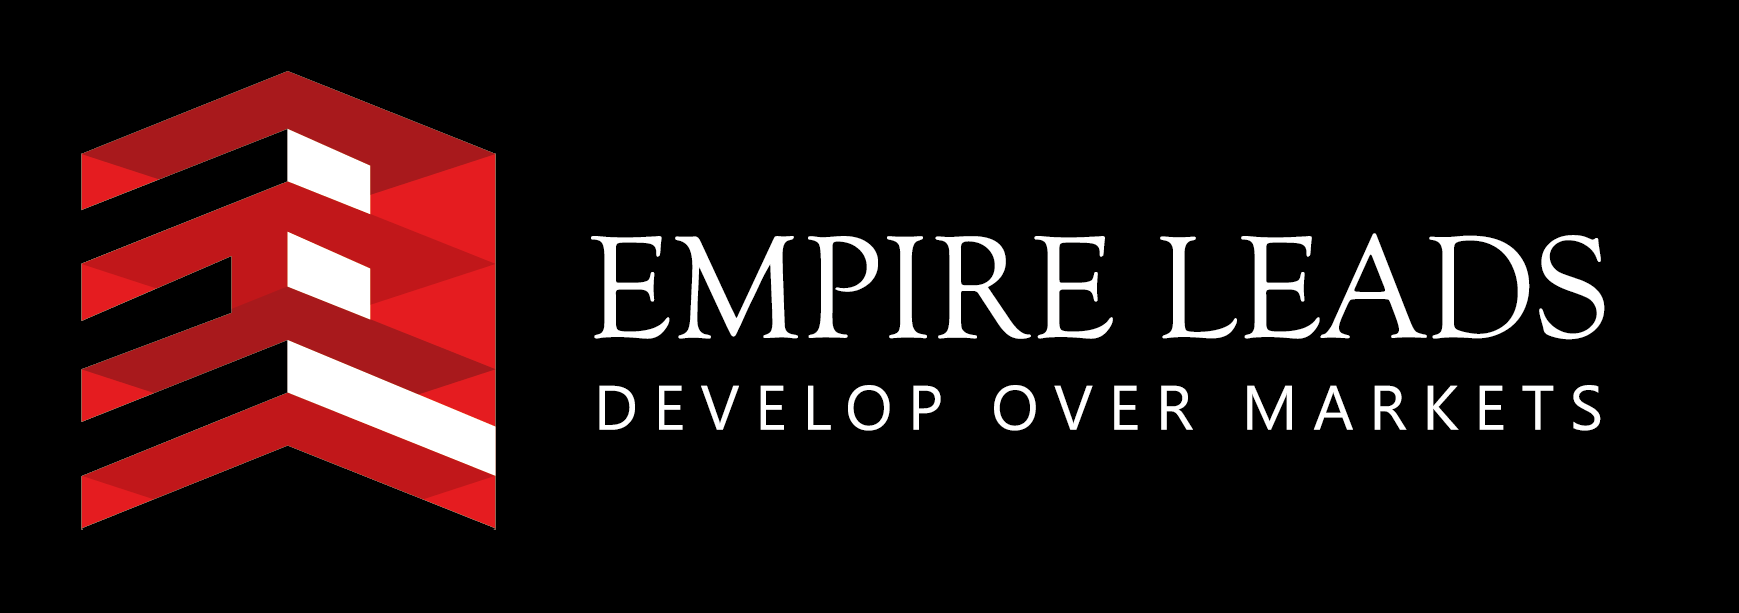 Empire Leads™